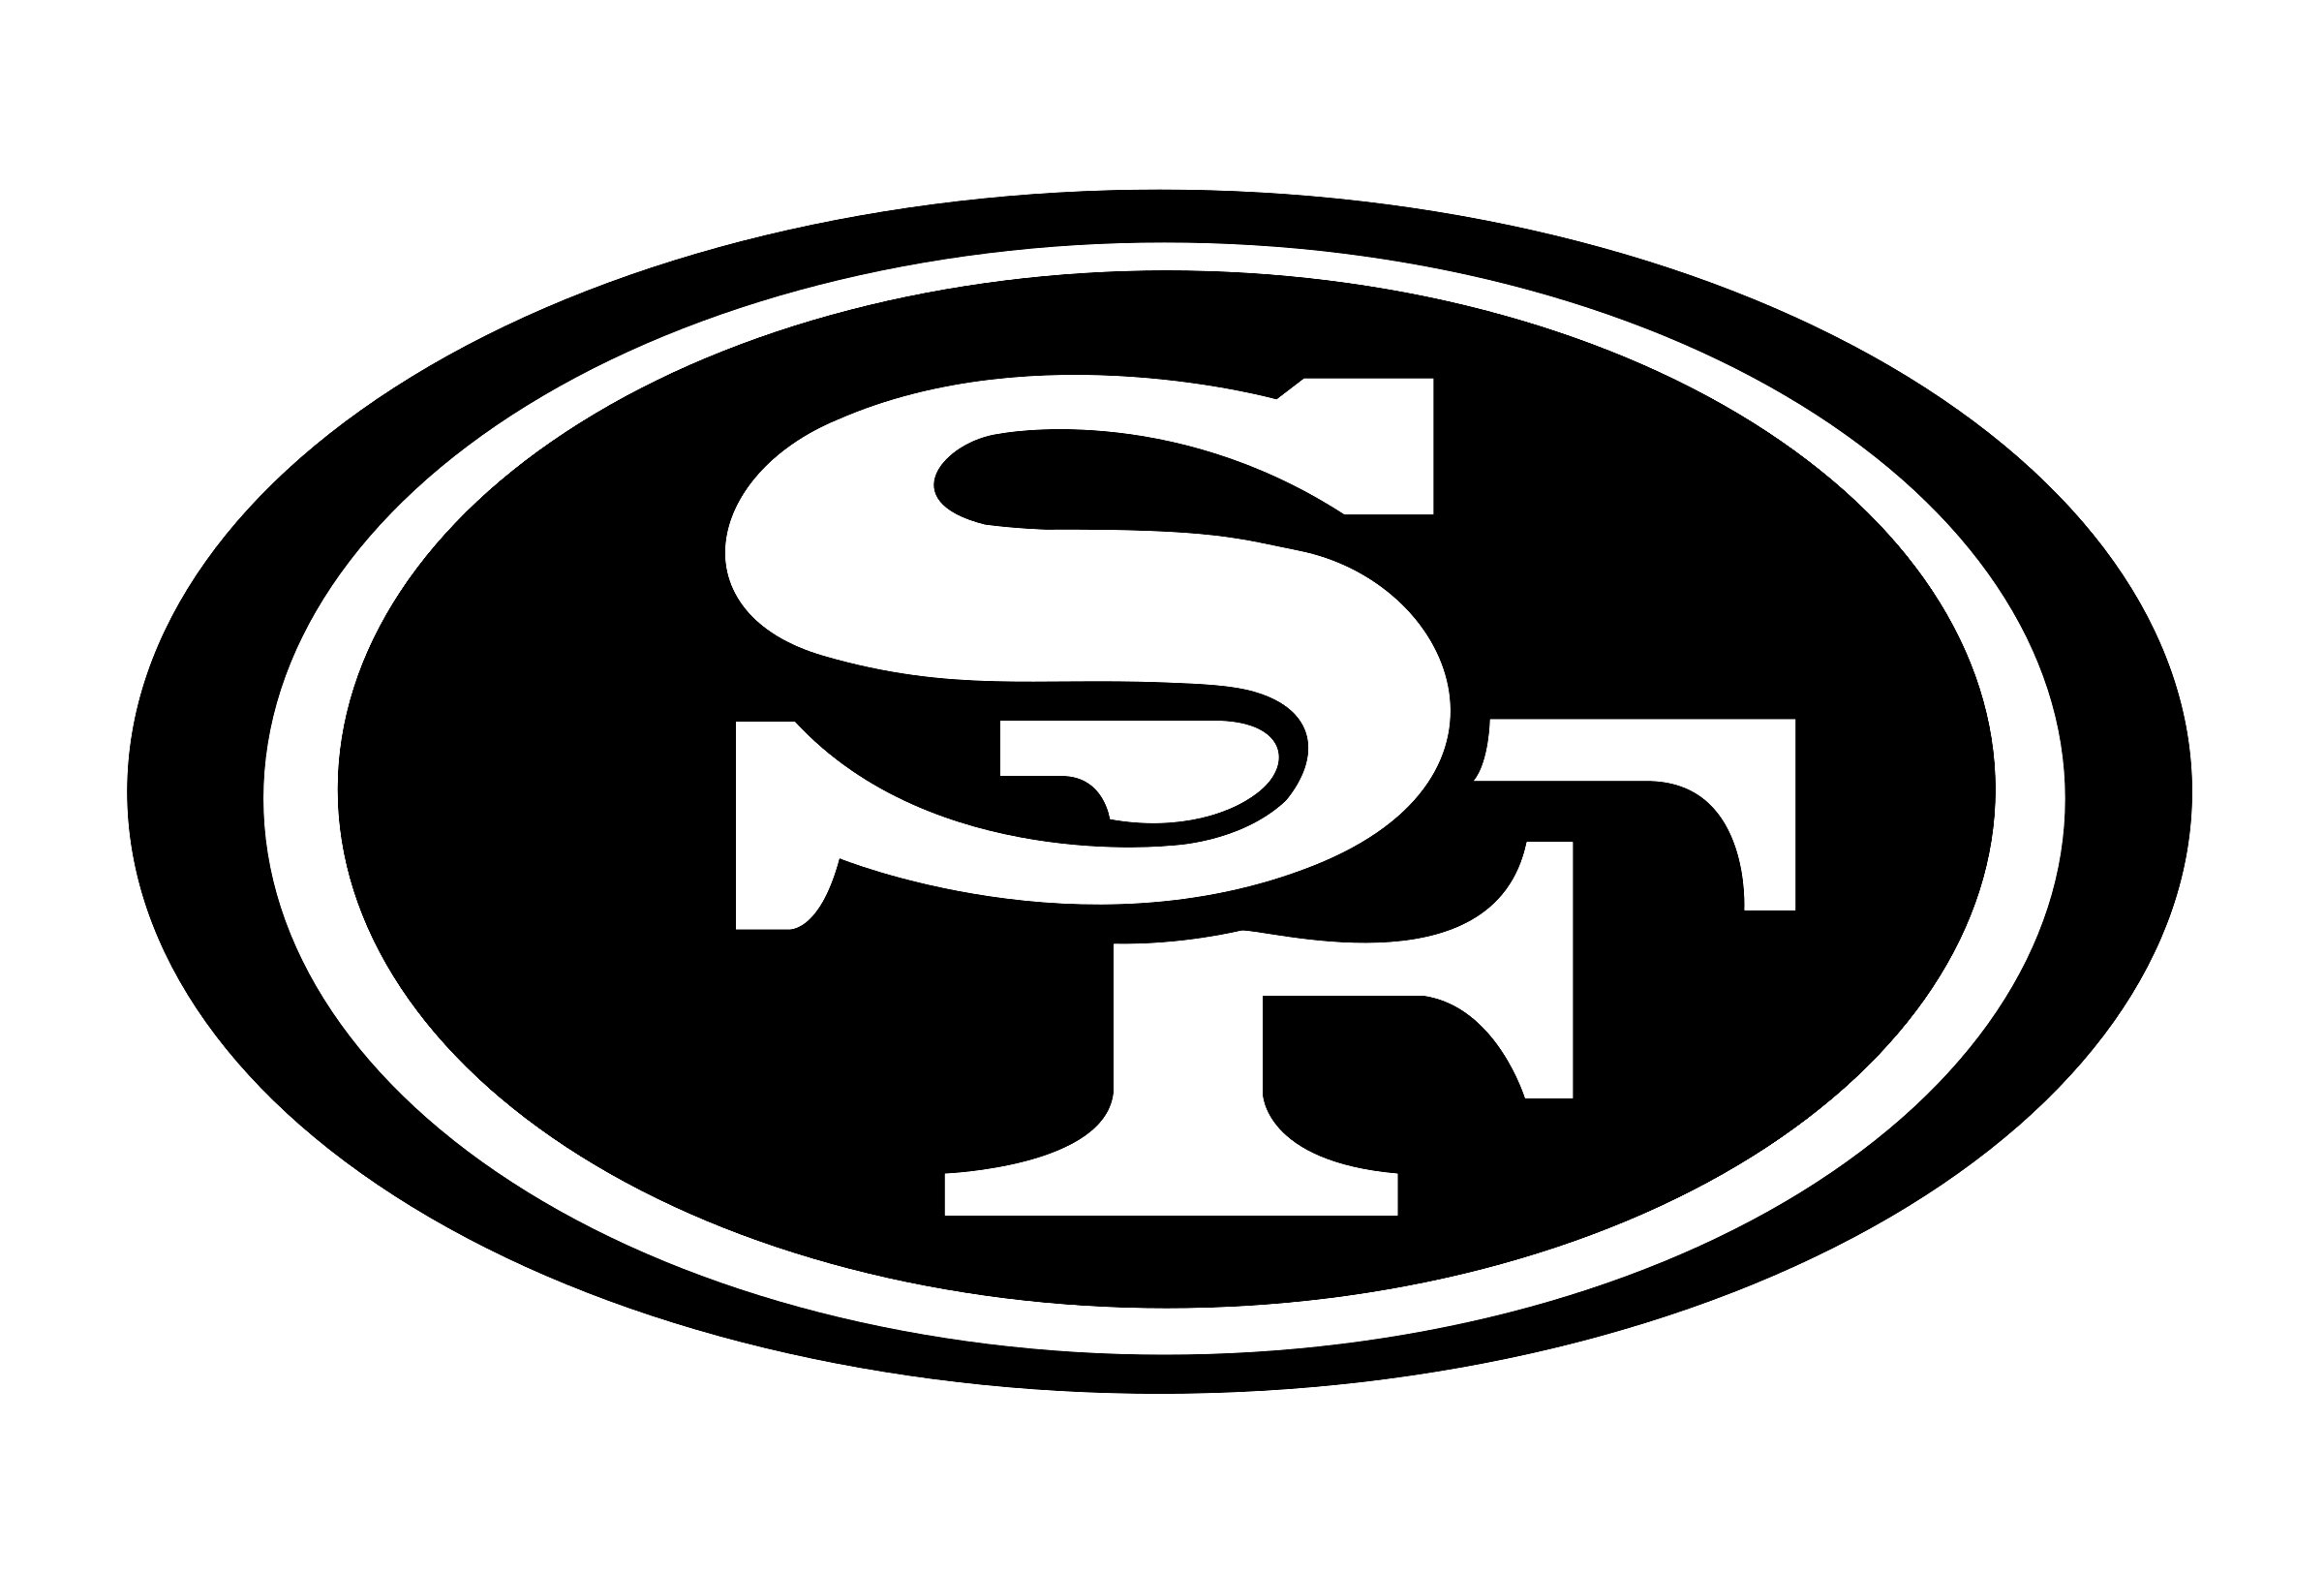 San Francisco 49ers Logo Png Transparent Svg Vector Freebie Supply